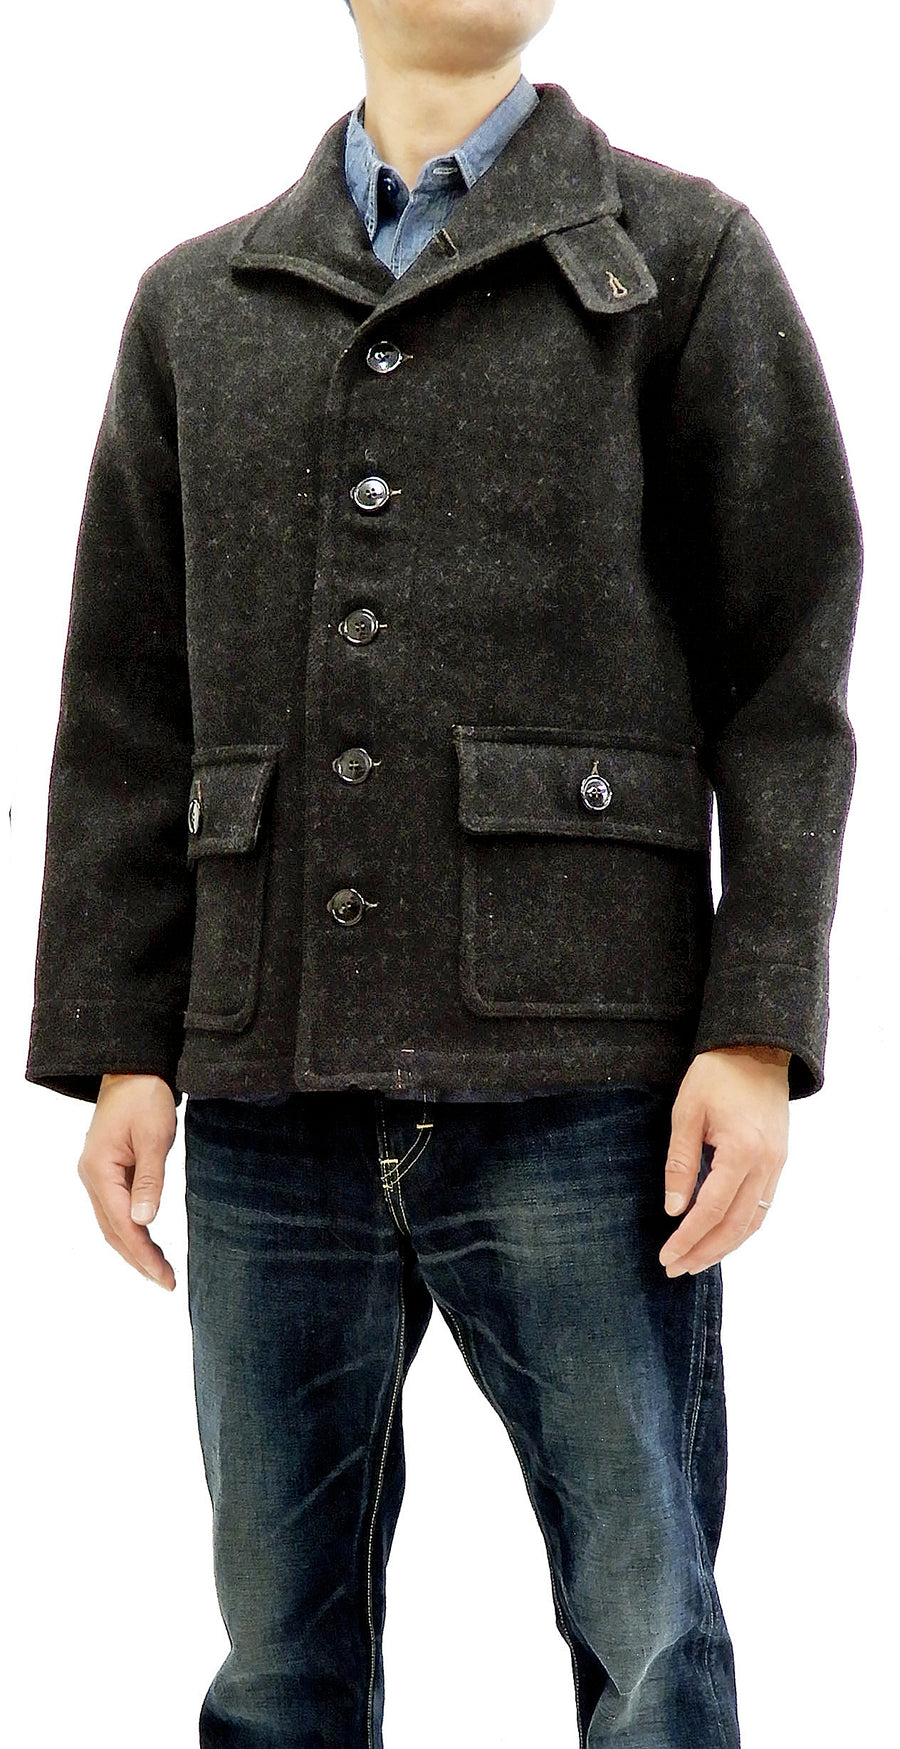 Buzz Rickson Men's US Navy Winter Woolen Submariner Coat Melton jacket BR13877 Charcoal